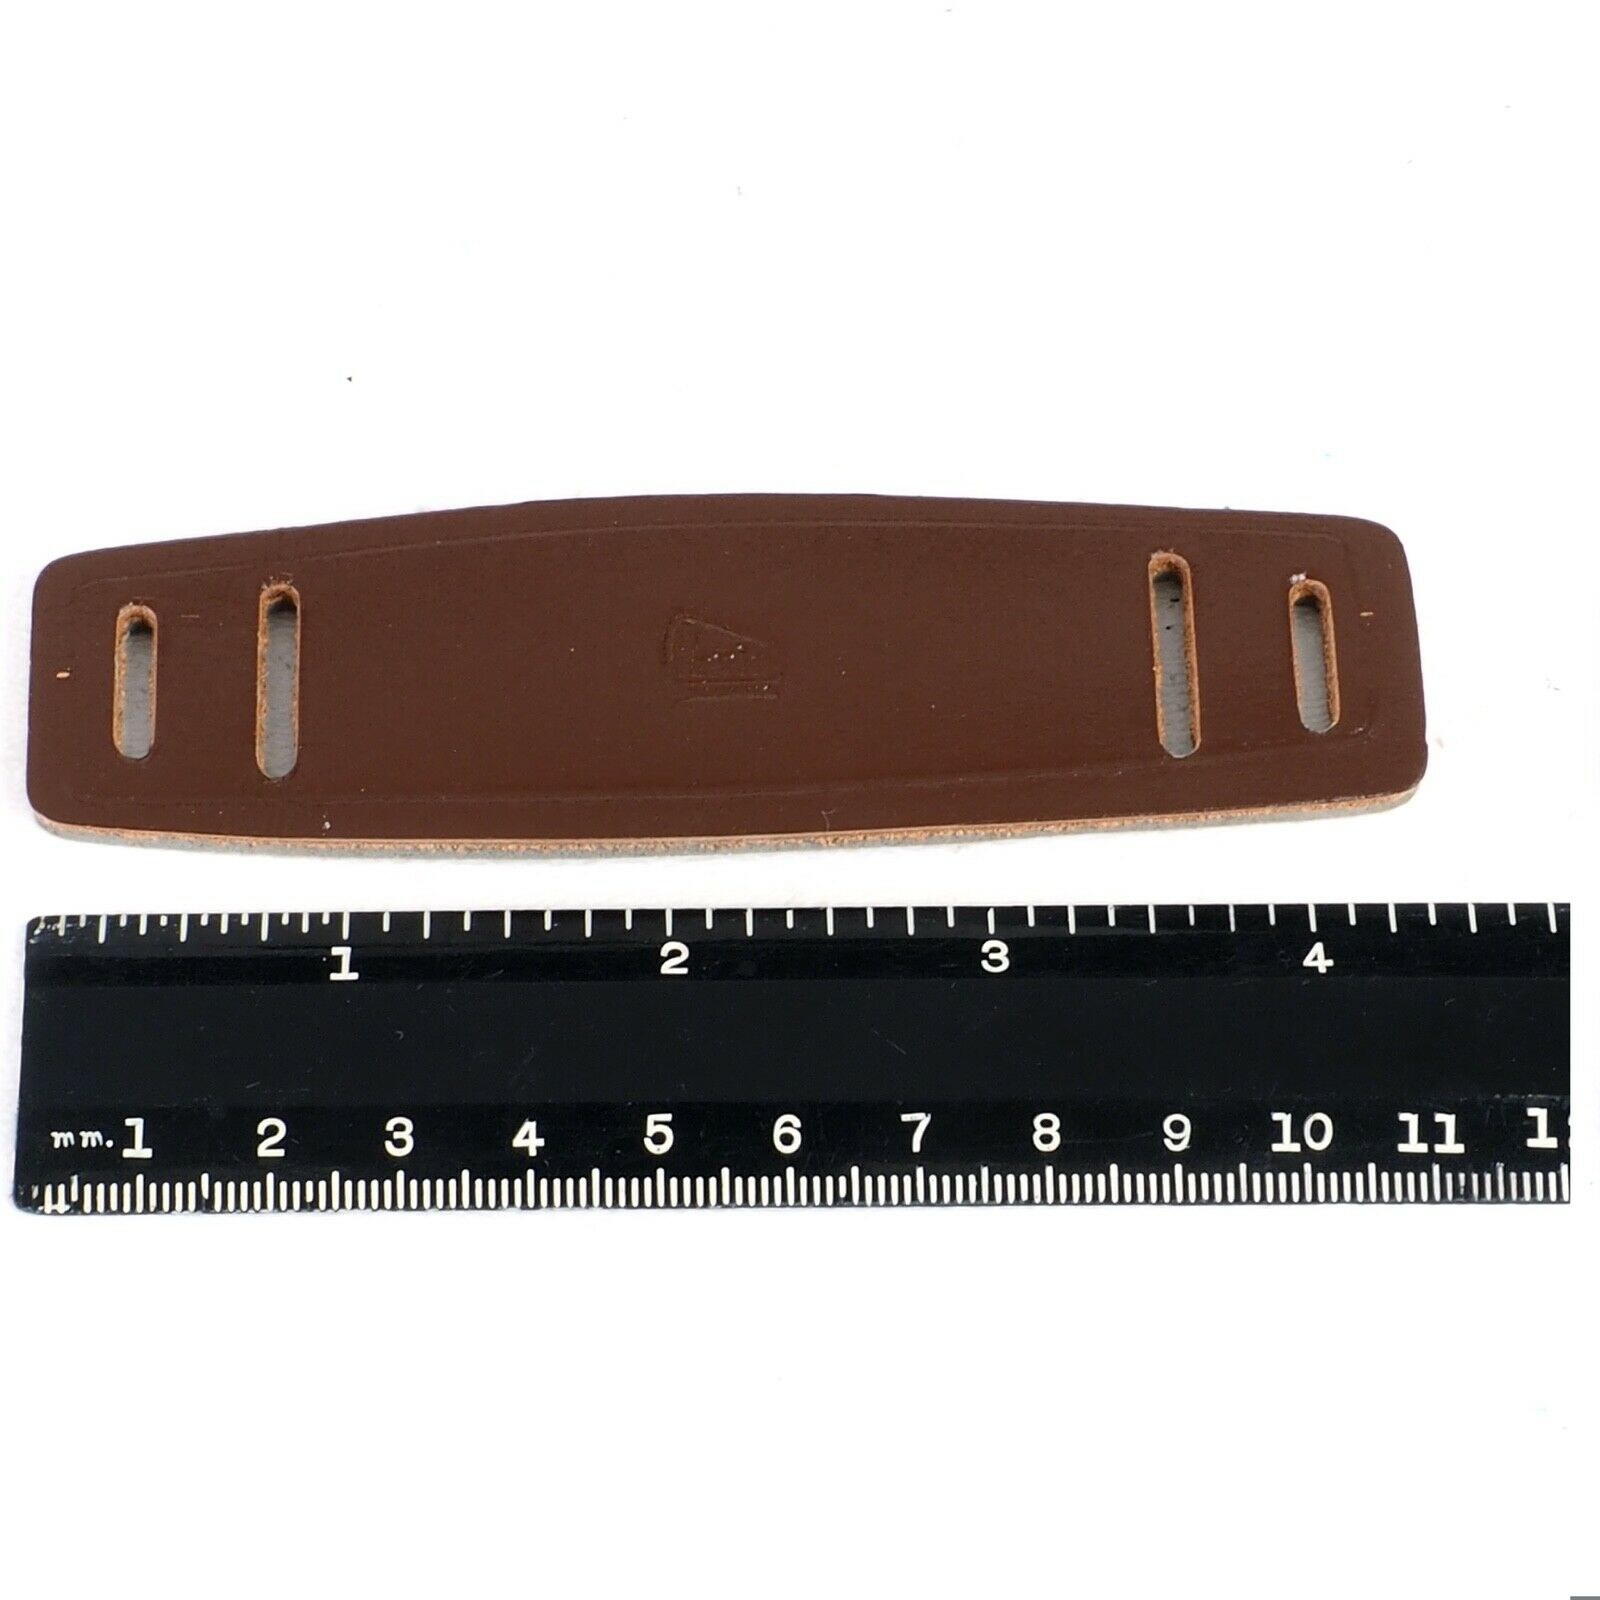 ^ NOS Perrin Brown Supple Leather Neck Strap Pads for Cameras, Binoculars etc!